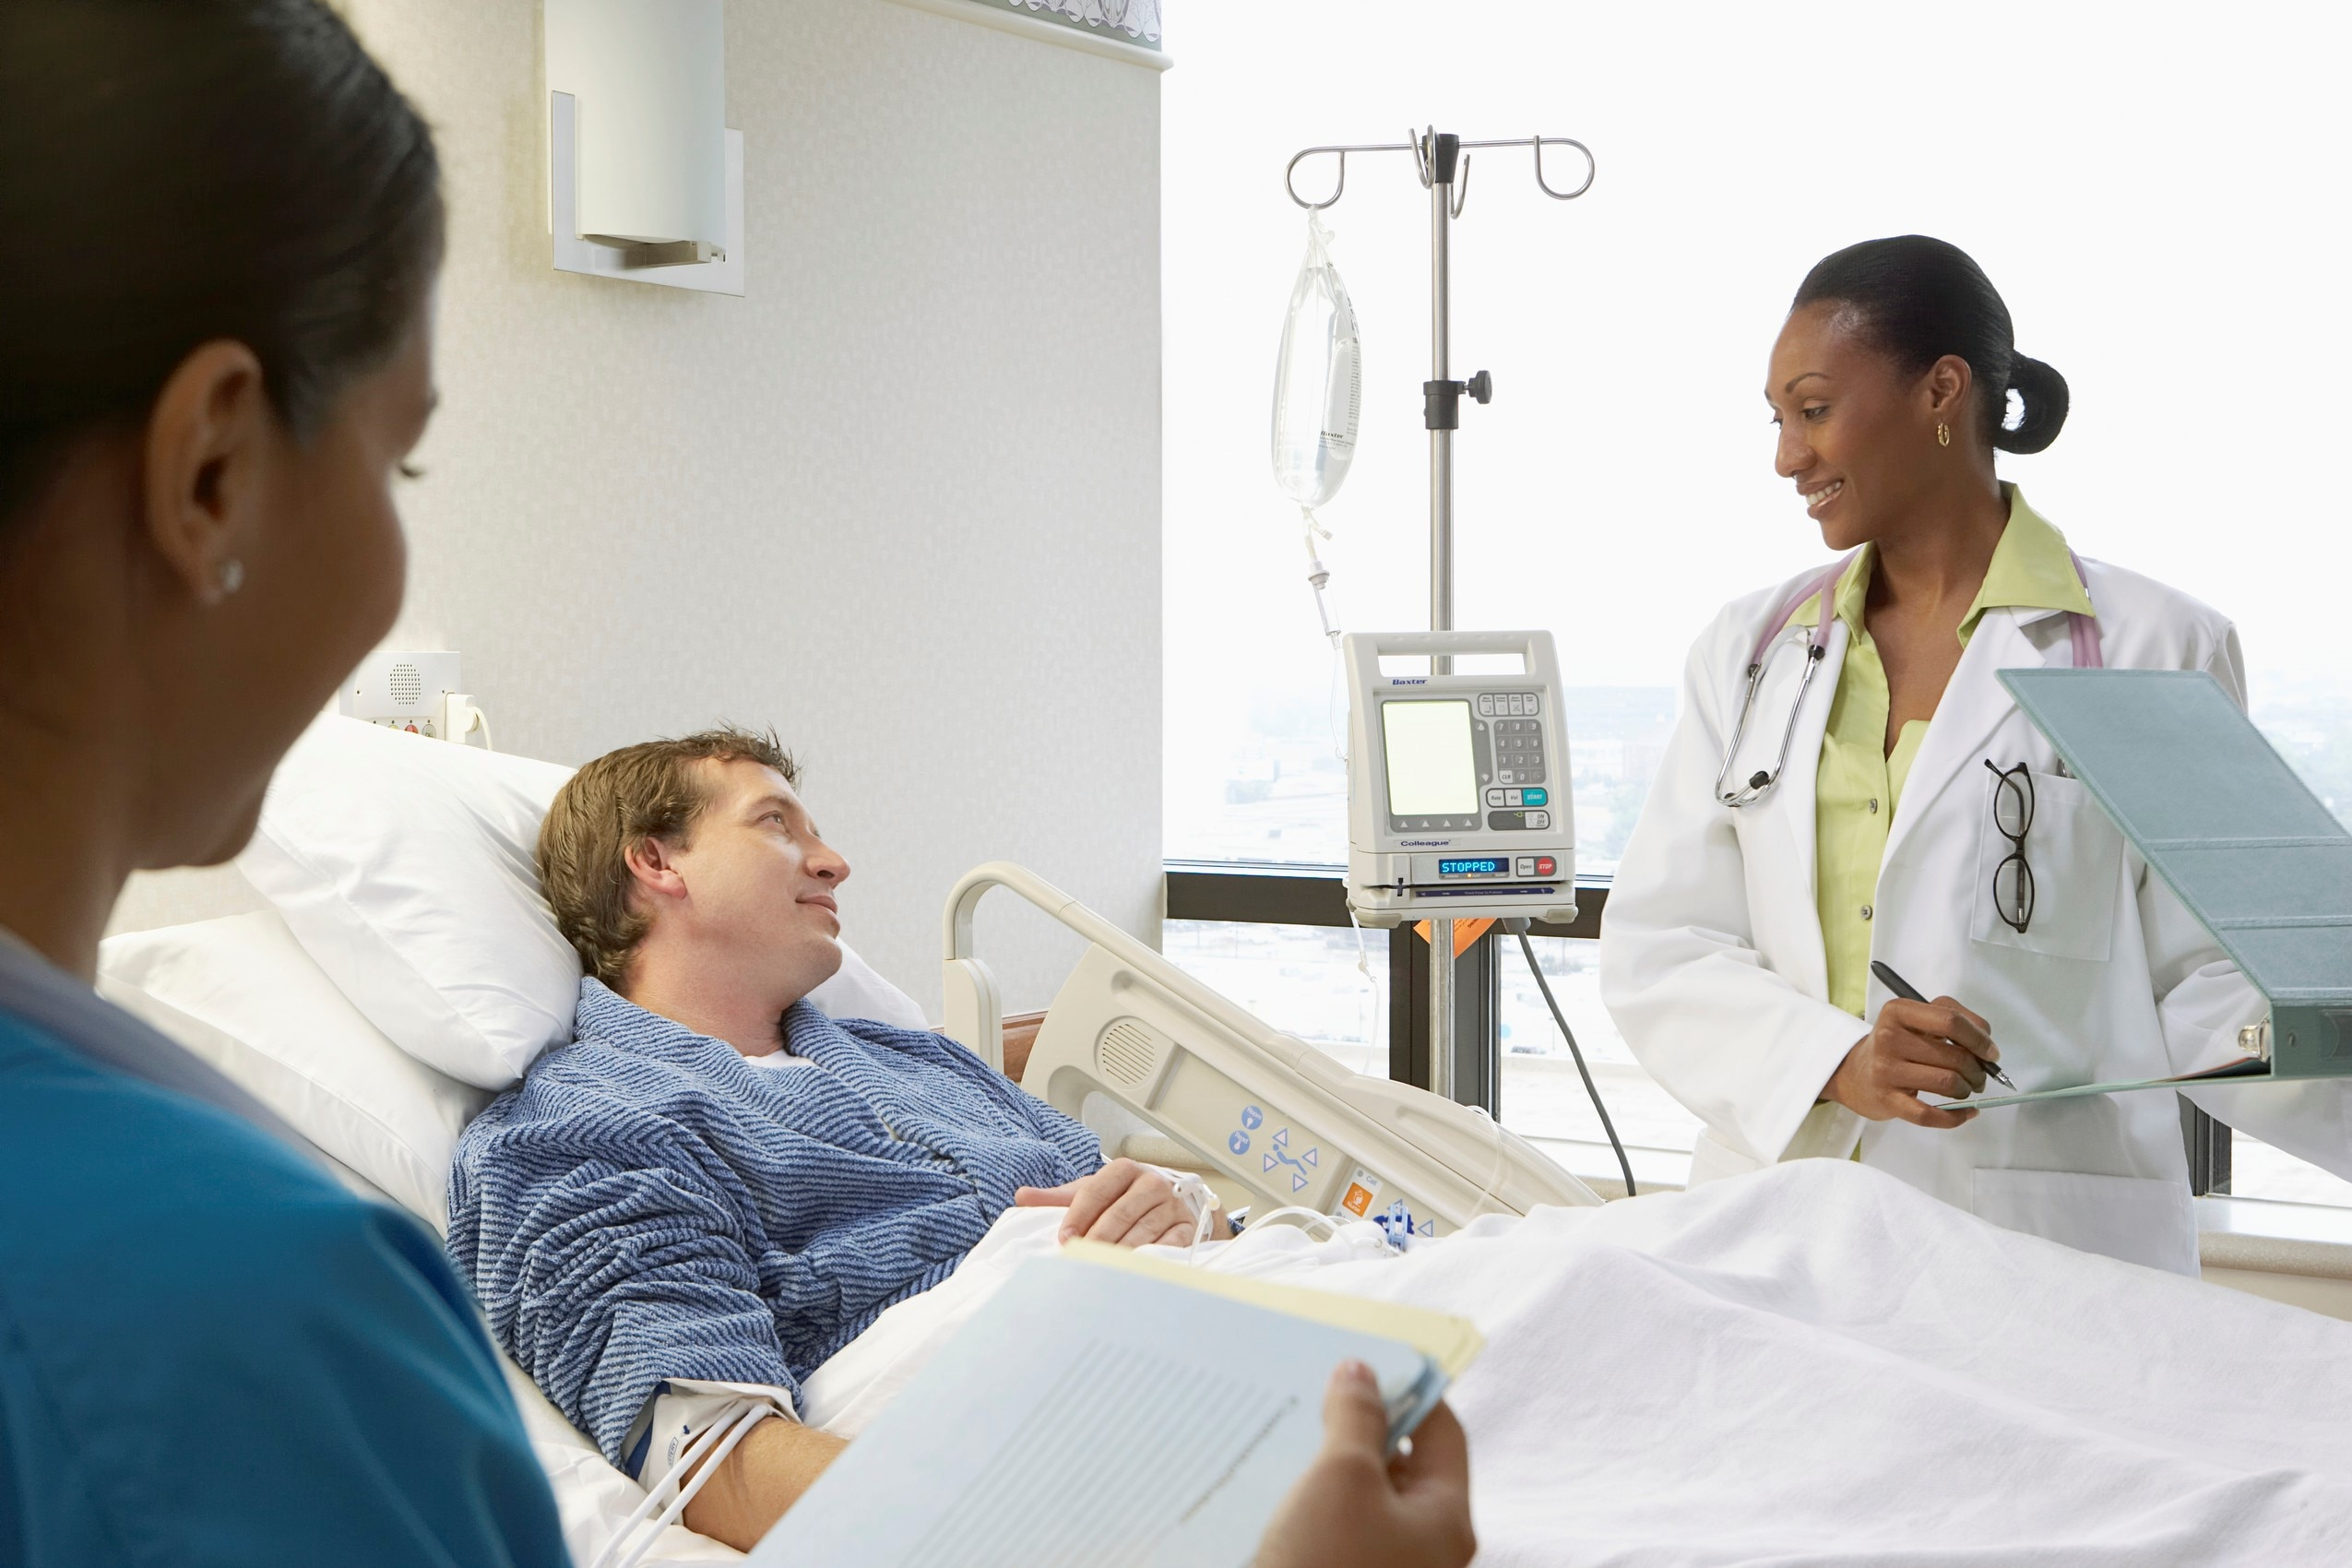 Health care professionals talking with a patient in a hospital bed.